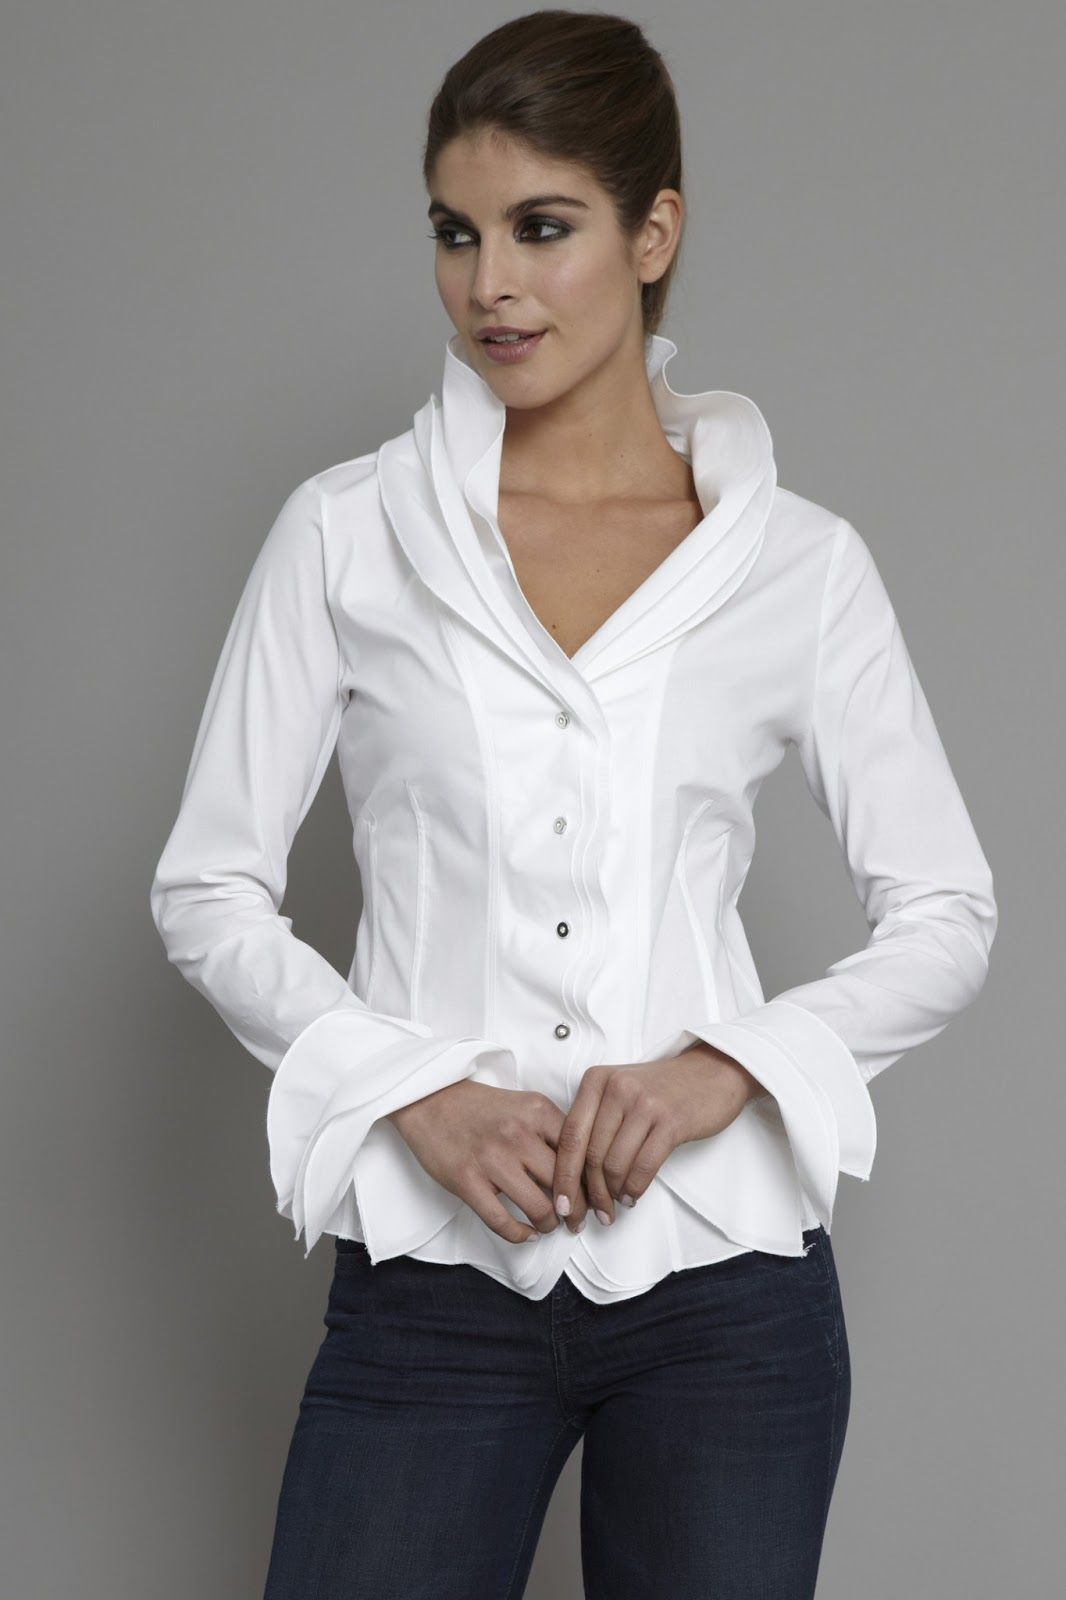 French Cuff Blouses For Women Www Topsimages Com